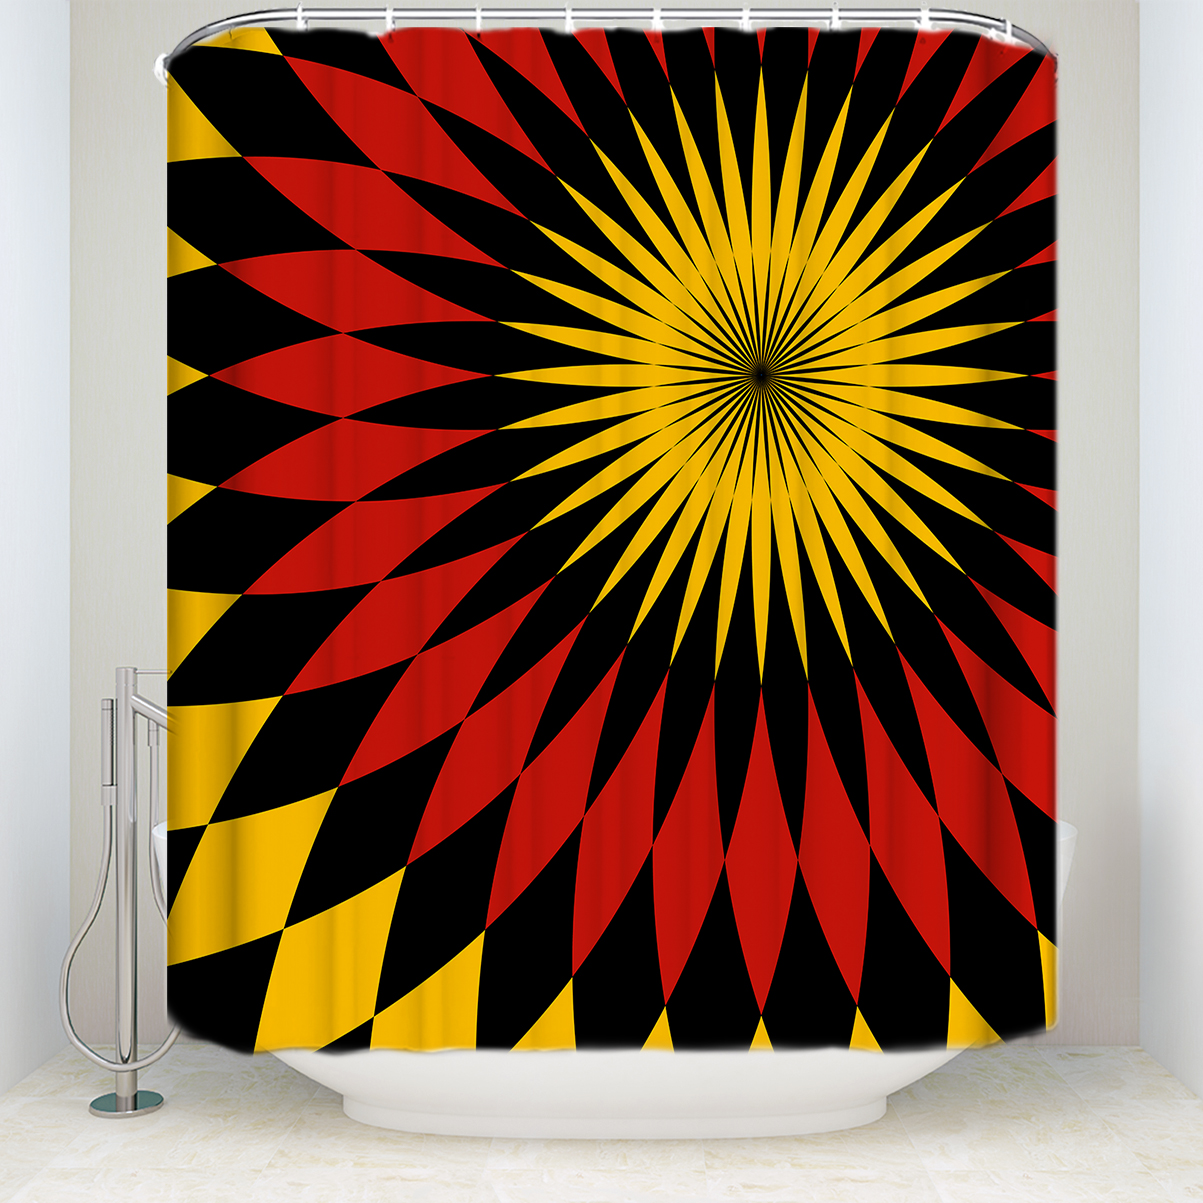 Us 15 42 50 Off New Arrival Waterproof Ethnic Tribe Pattern Shower Curtain Polyester Fabric Red Black Yellow Bathroom Curtains For Home Decor In